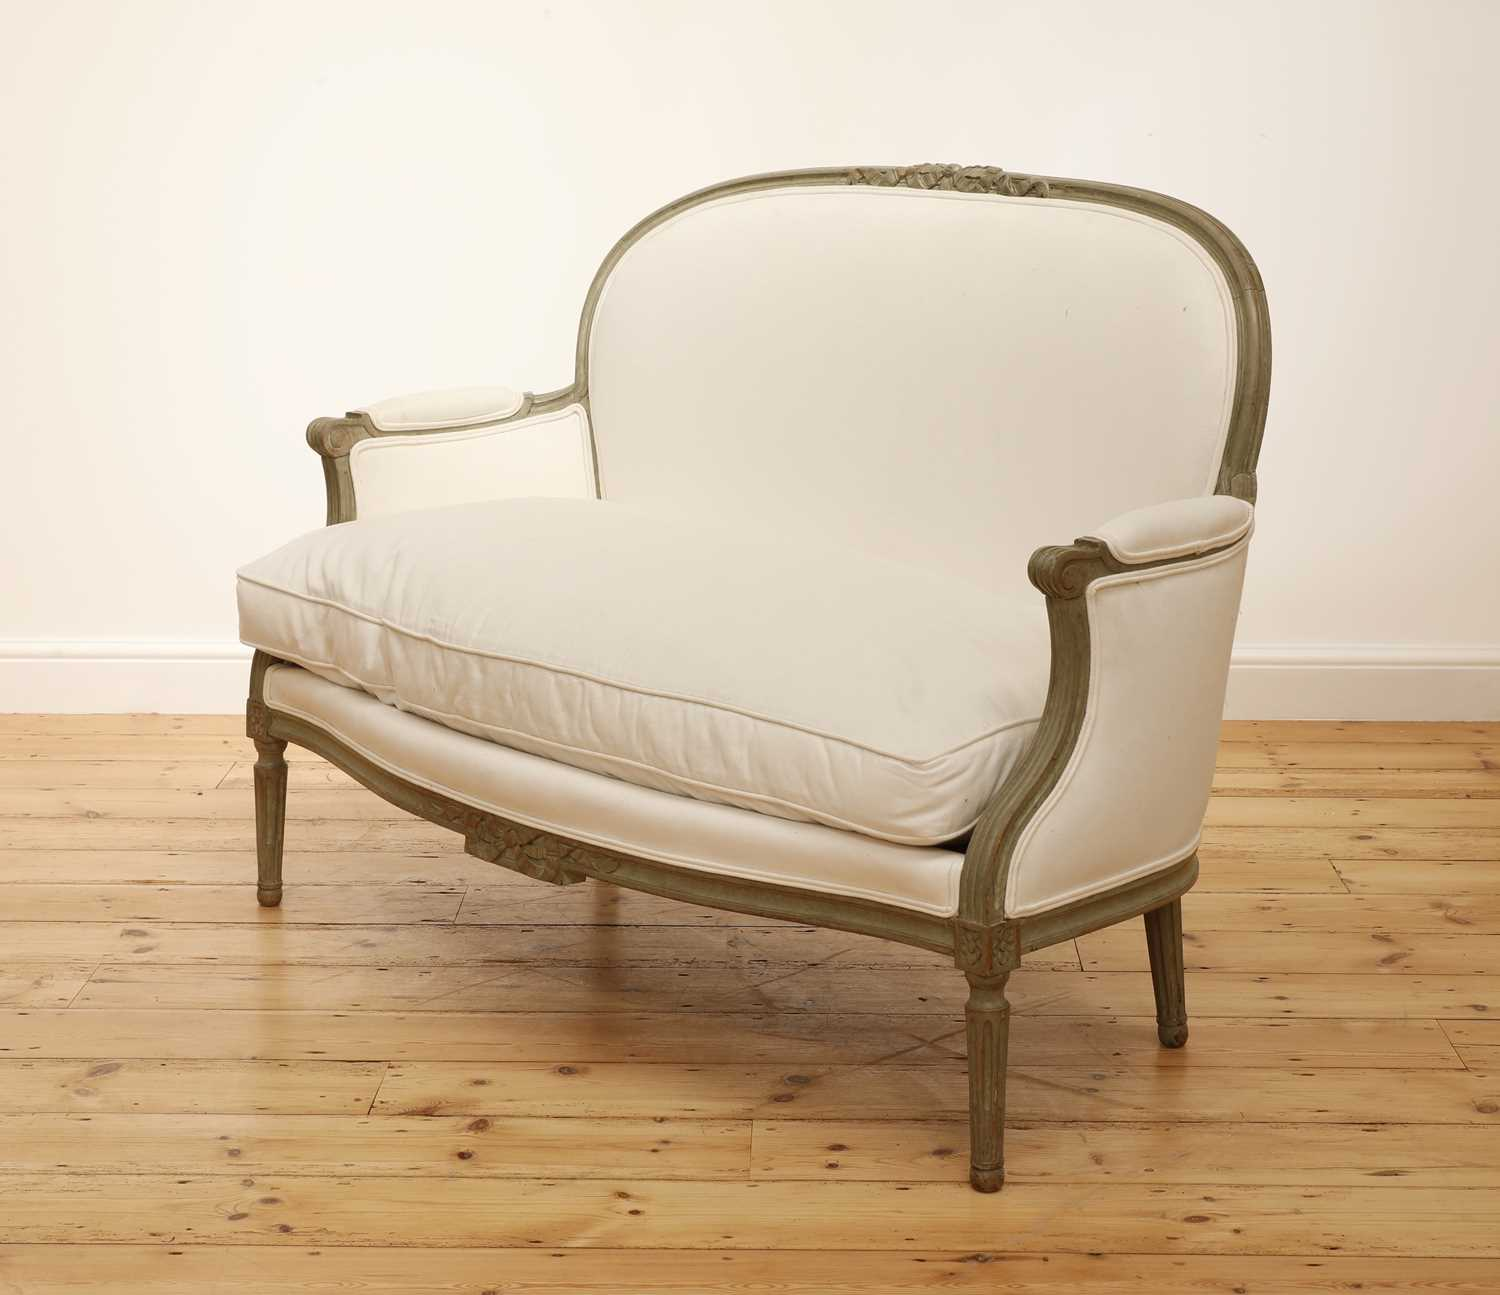 A small French Louis XVI-style settee, - Image 2 of 4